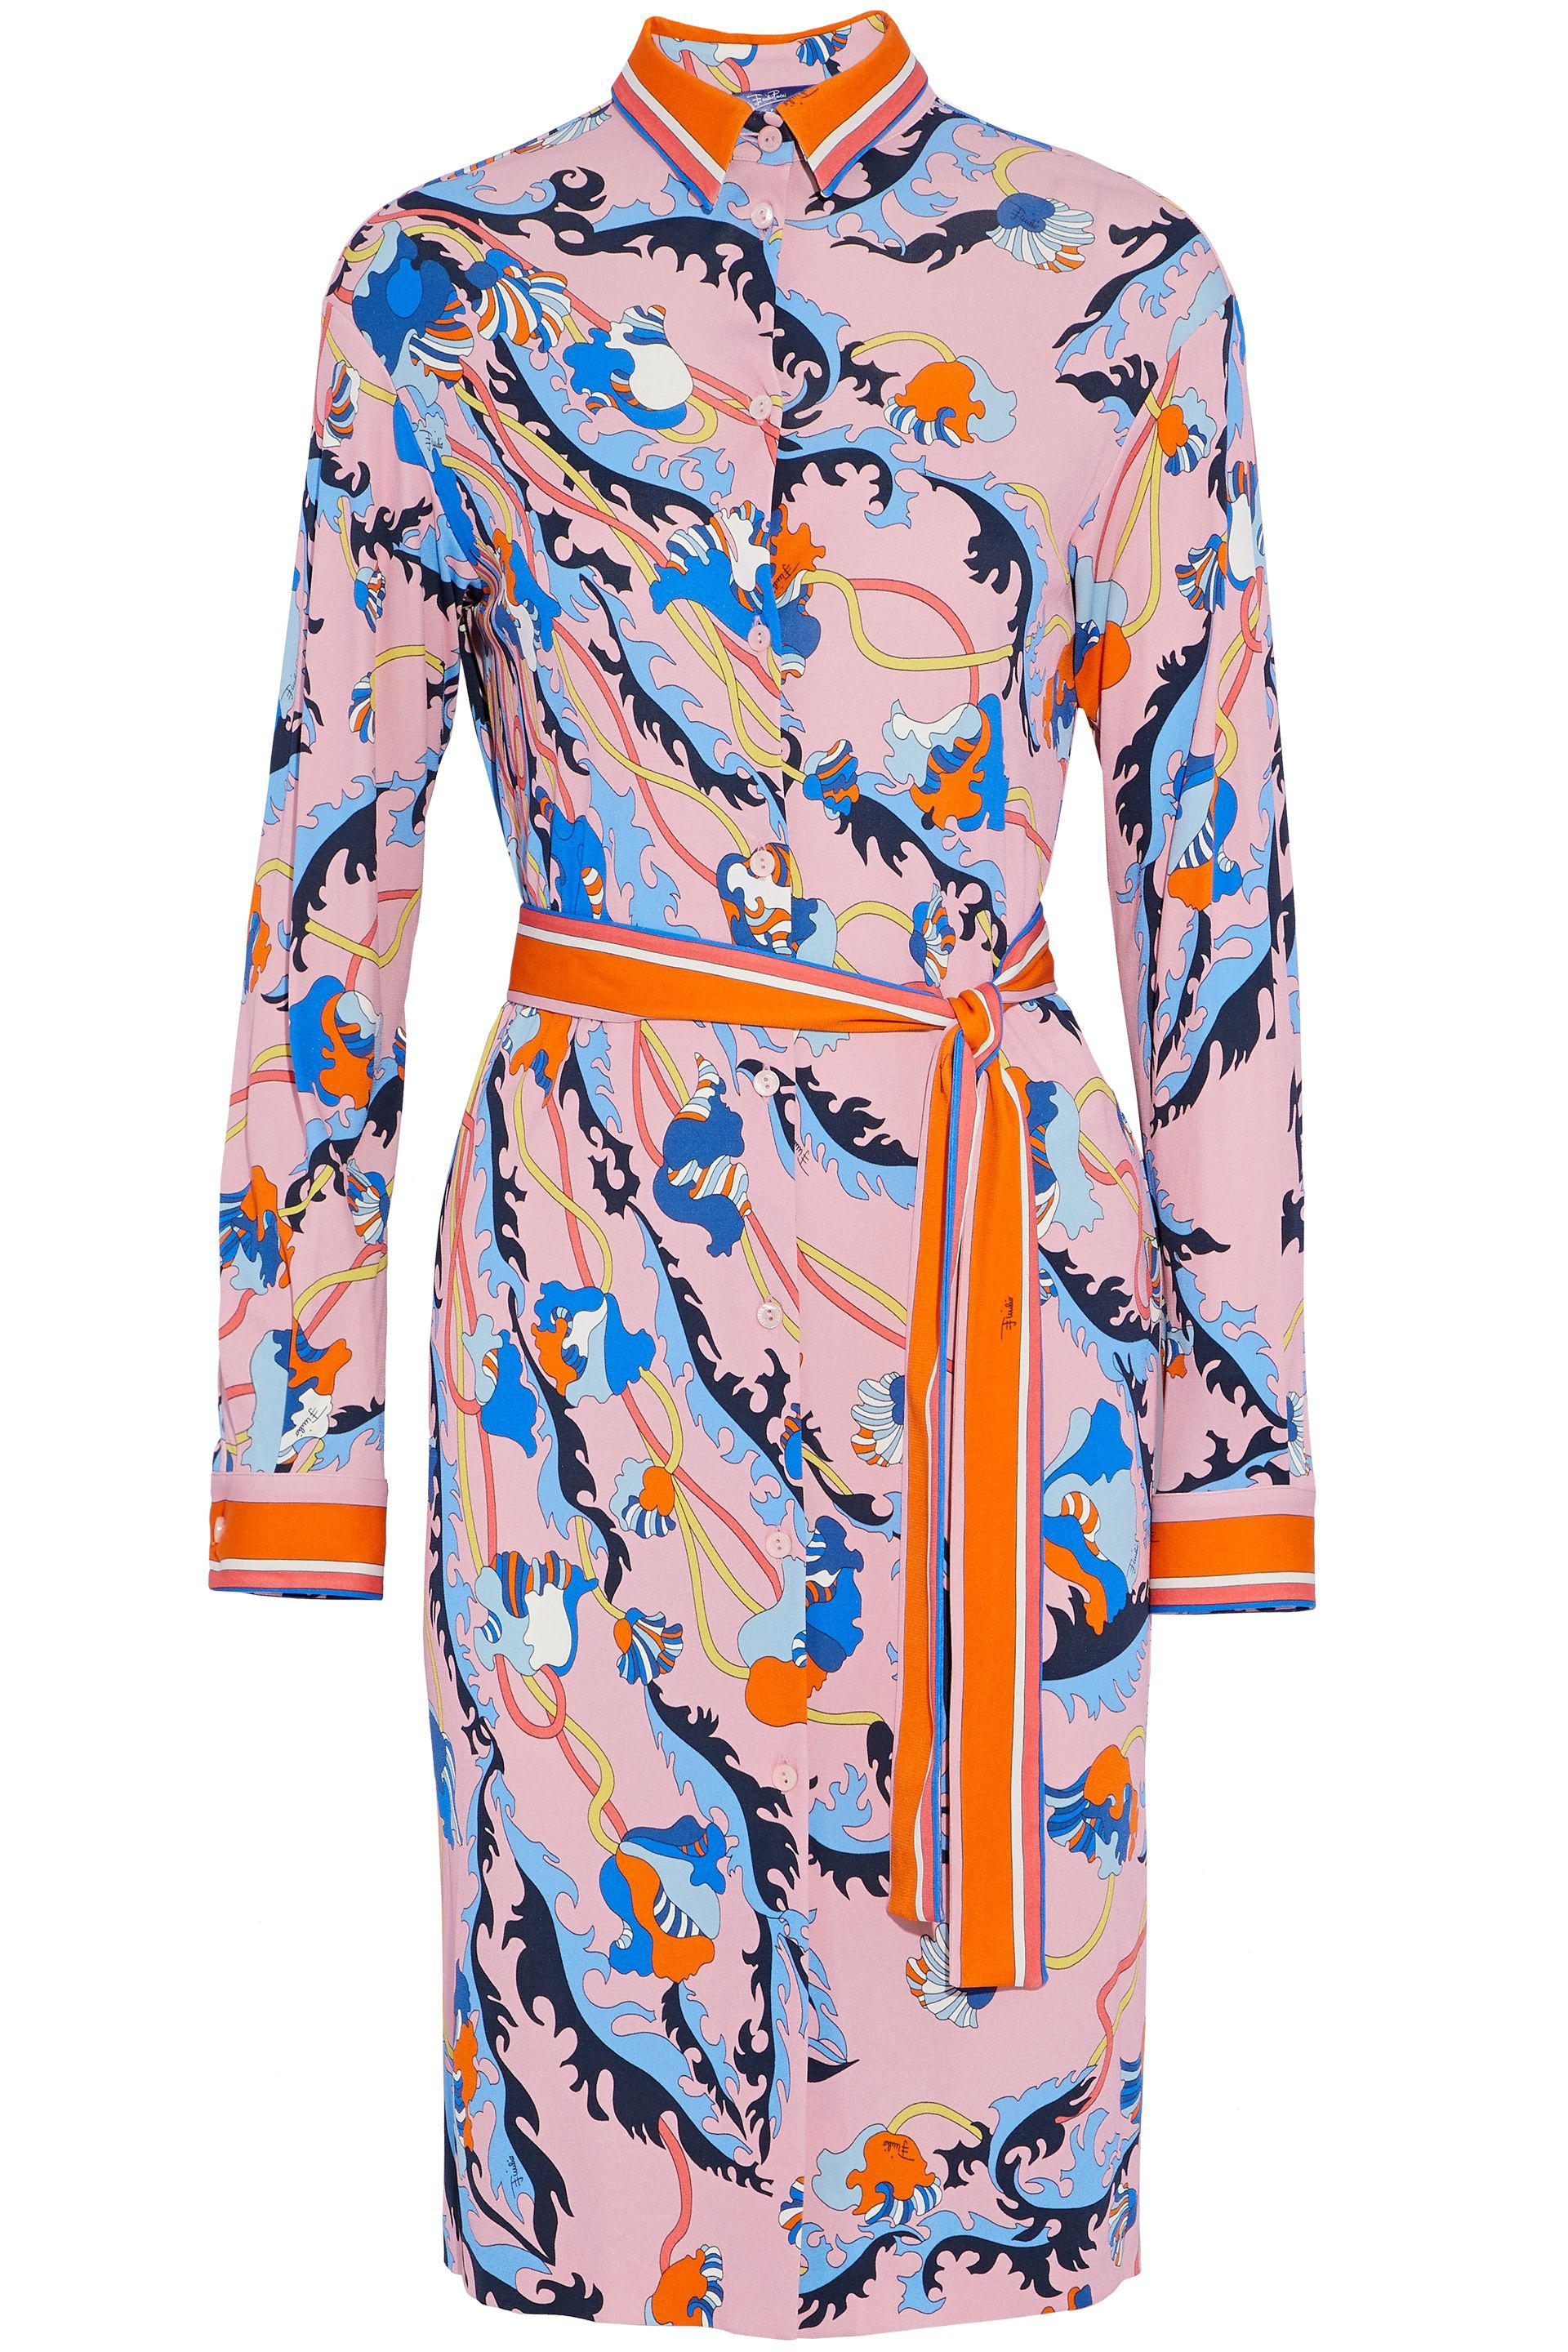 Printed jersey shirt Emilio Pucci Outlet Low Price Fee Shipping Cheap Sale Shop Offer Free Shipping Pay With Visa Buy Cheap Pre Order Footlocker Pictures Online kLMq6evU